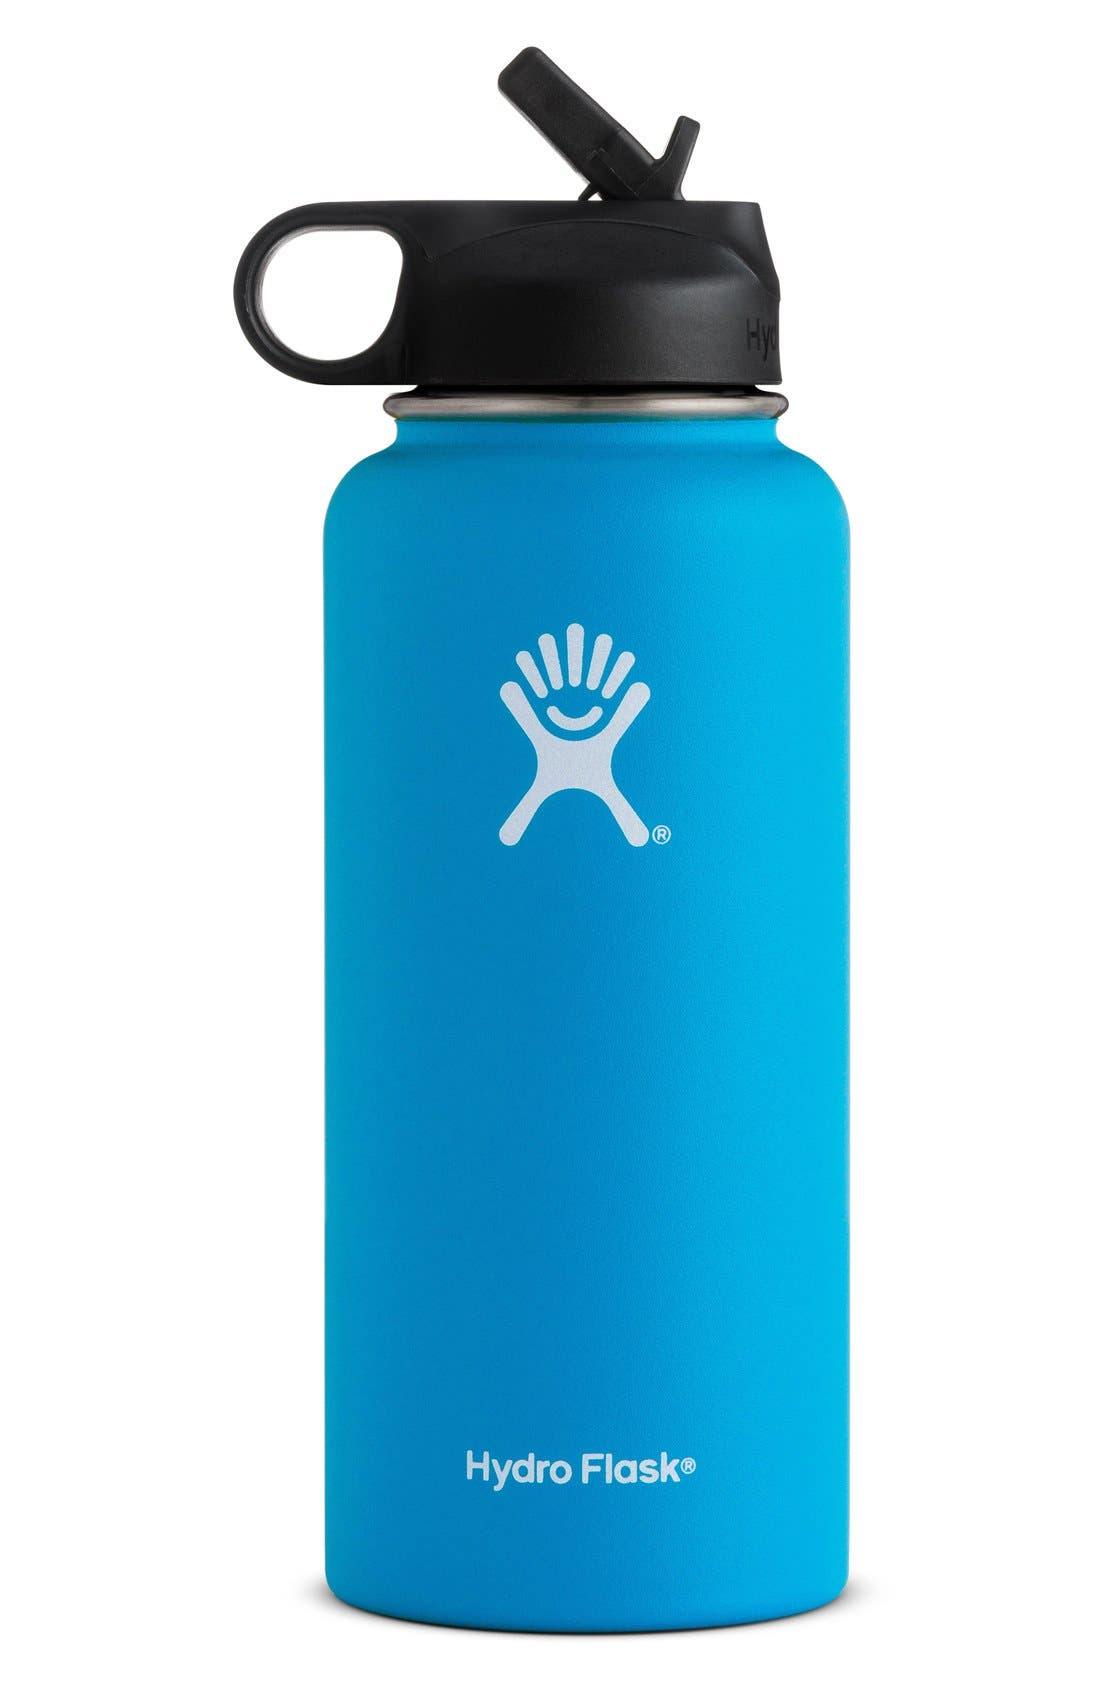 HYDRO FLASK 32-Ounce Wide Mouth Bottle with Straw Lid, Main, color, 410